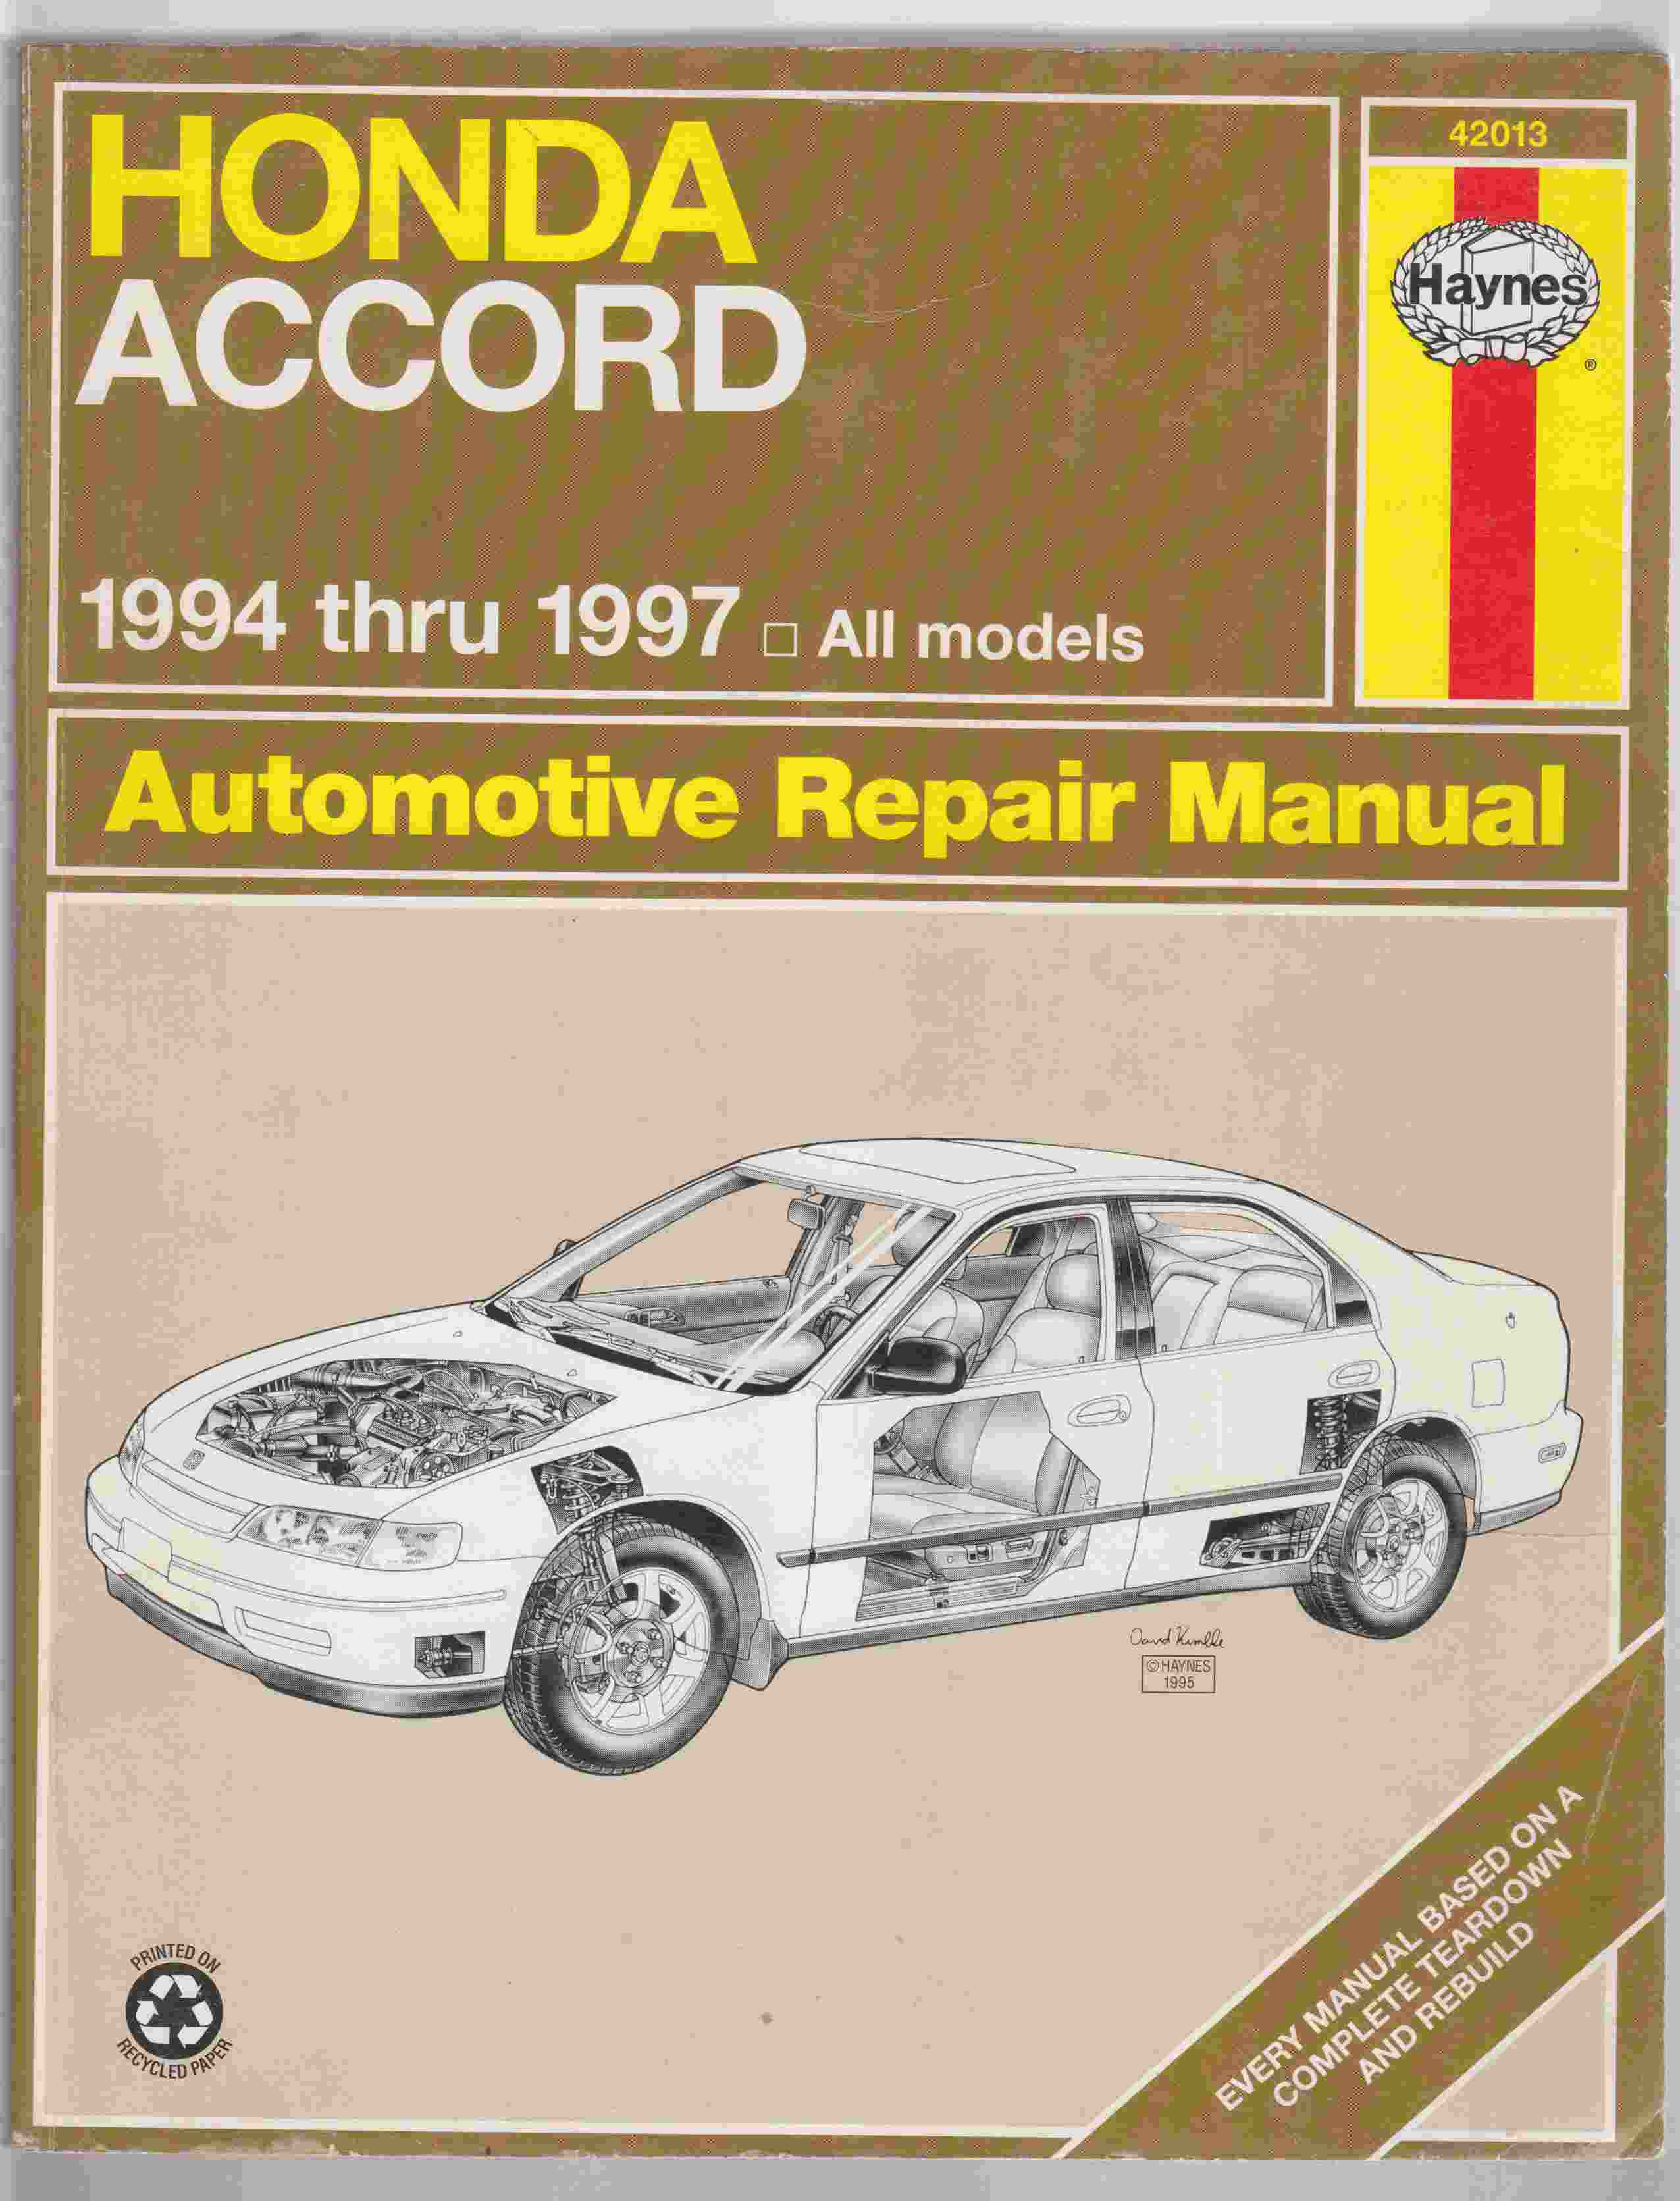 Image for Honda Accord 1994 Thru 1997 Automotive Repair Manual